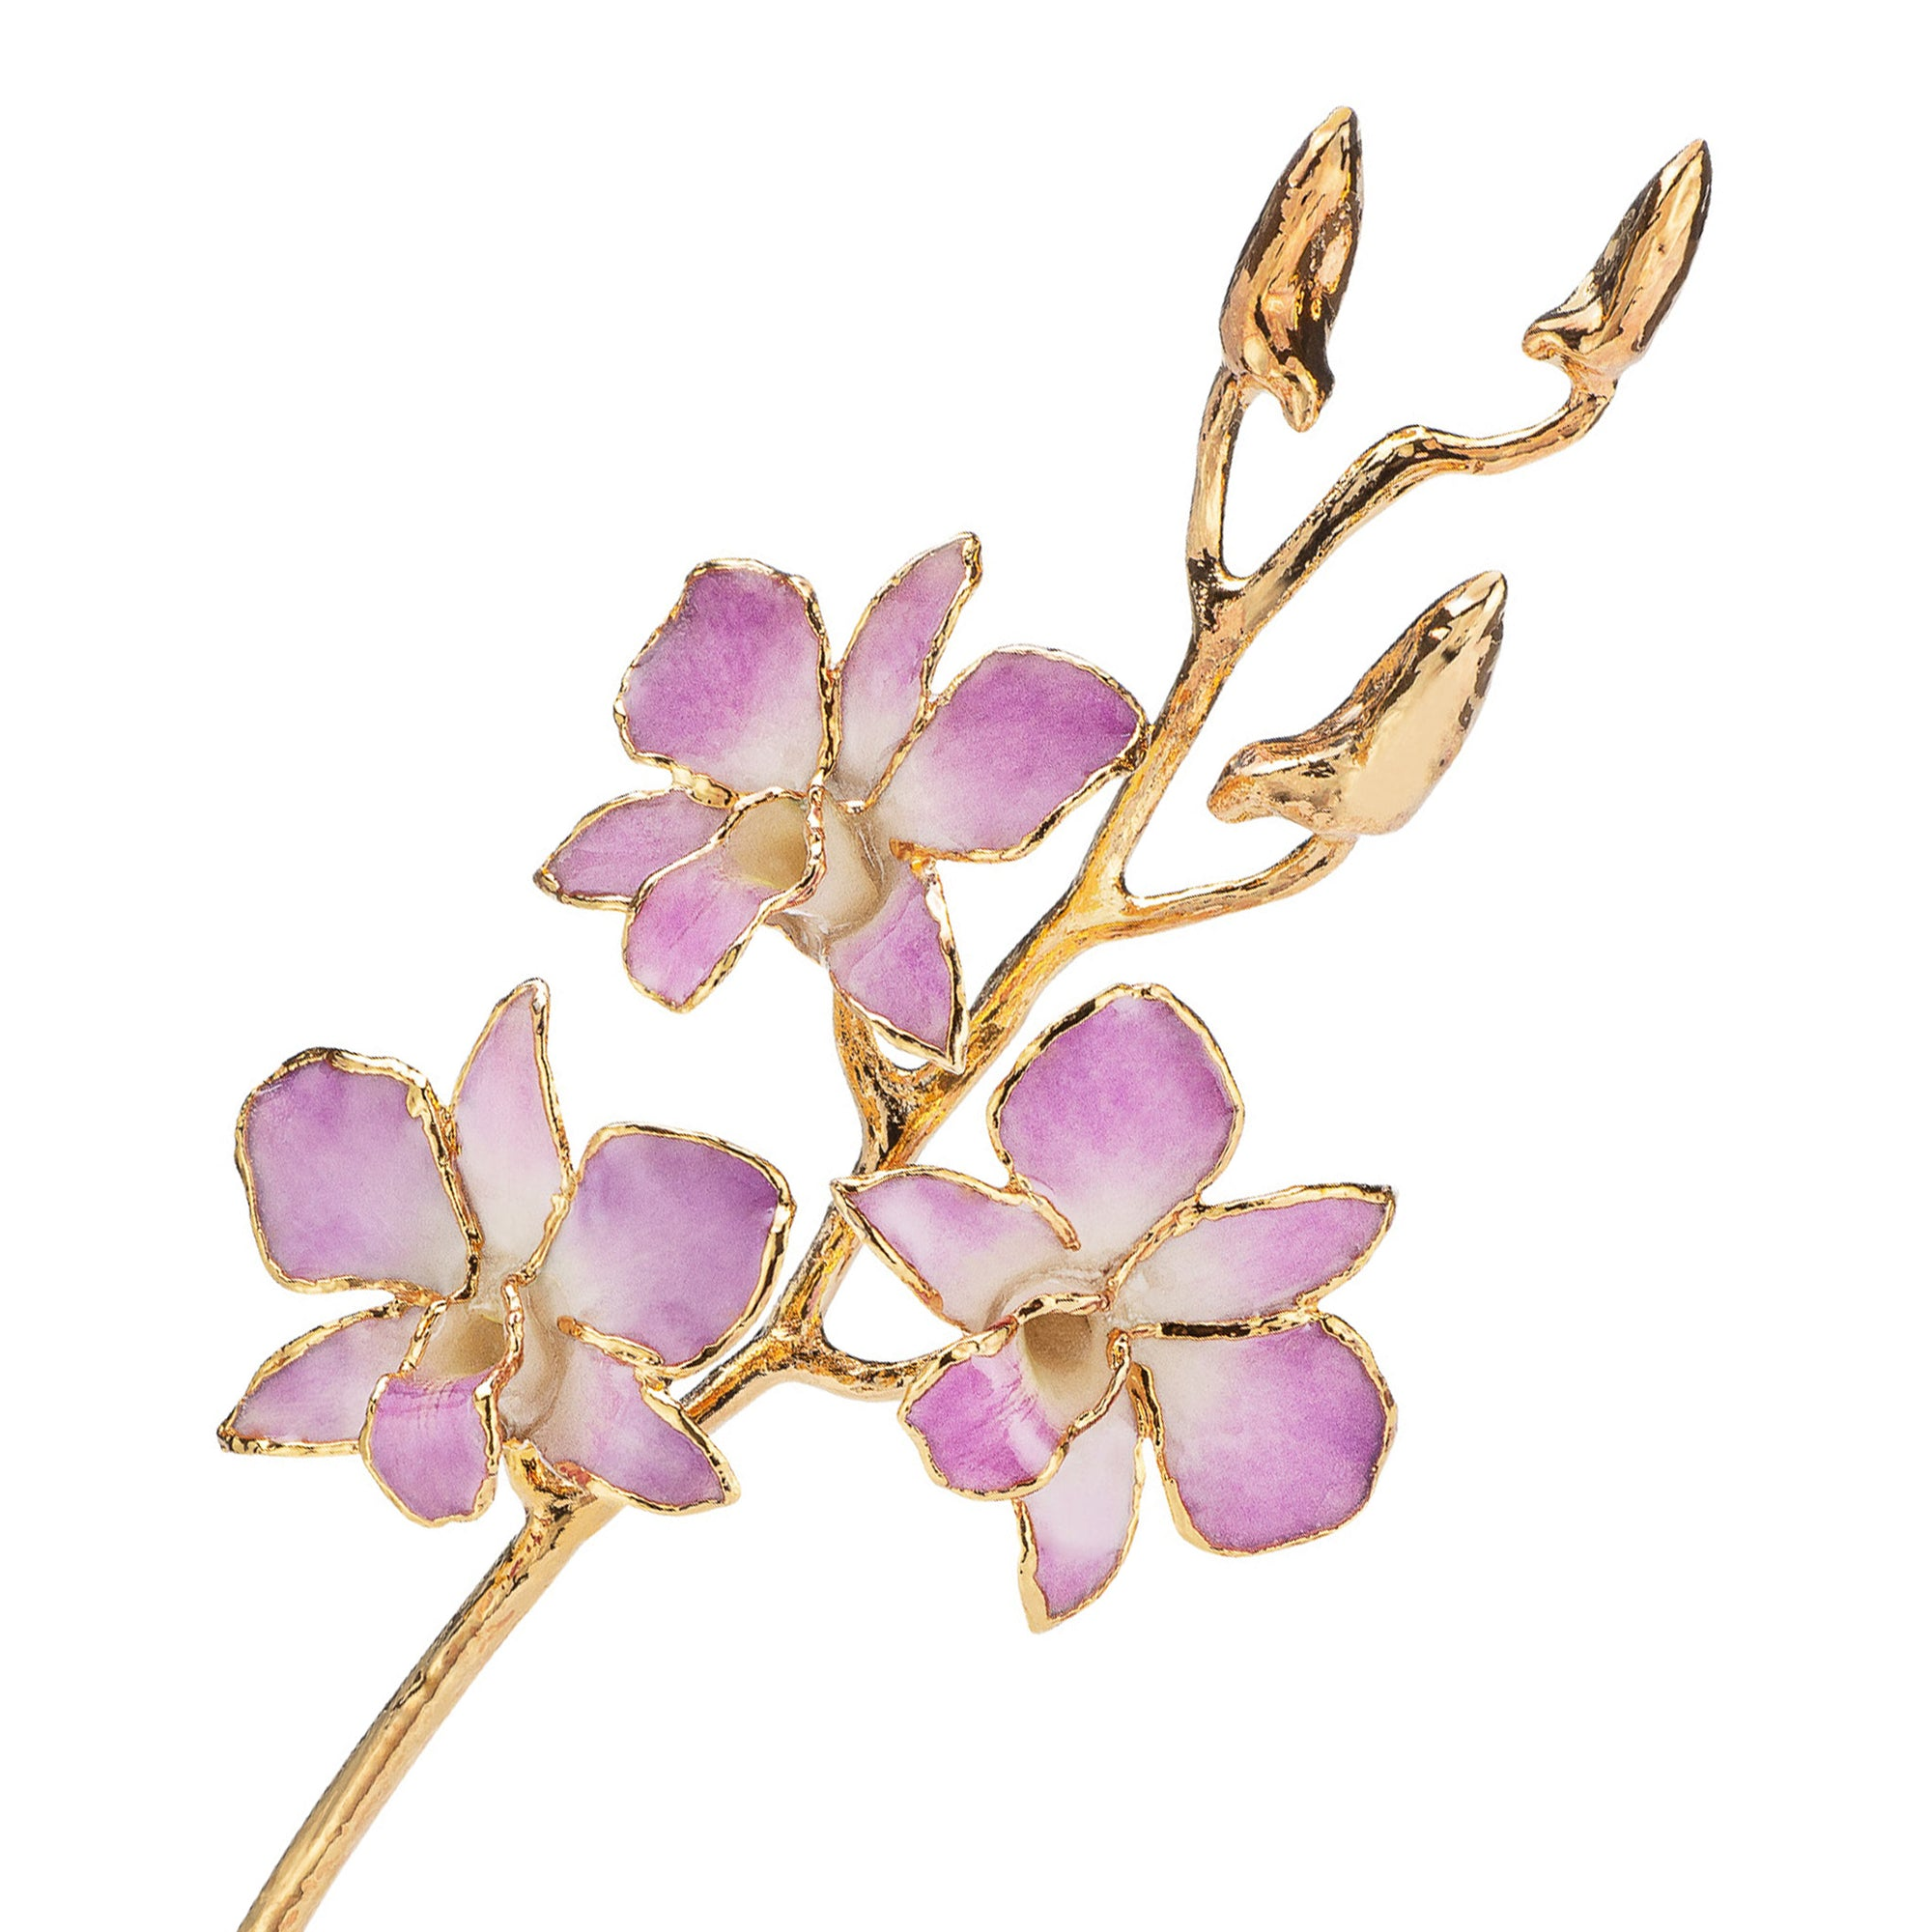 24K Gold Dipped Orchid in Lilac view of gold stem and flowers